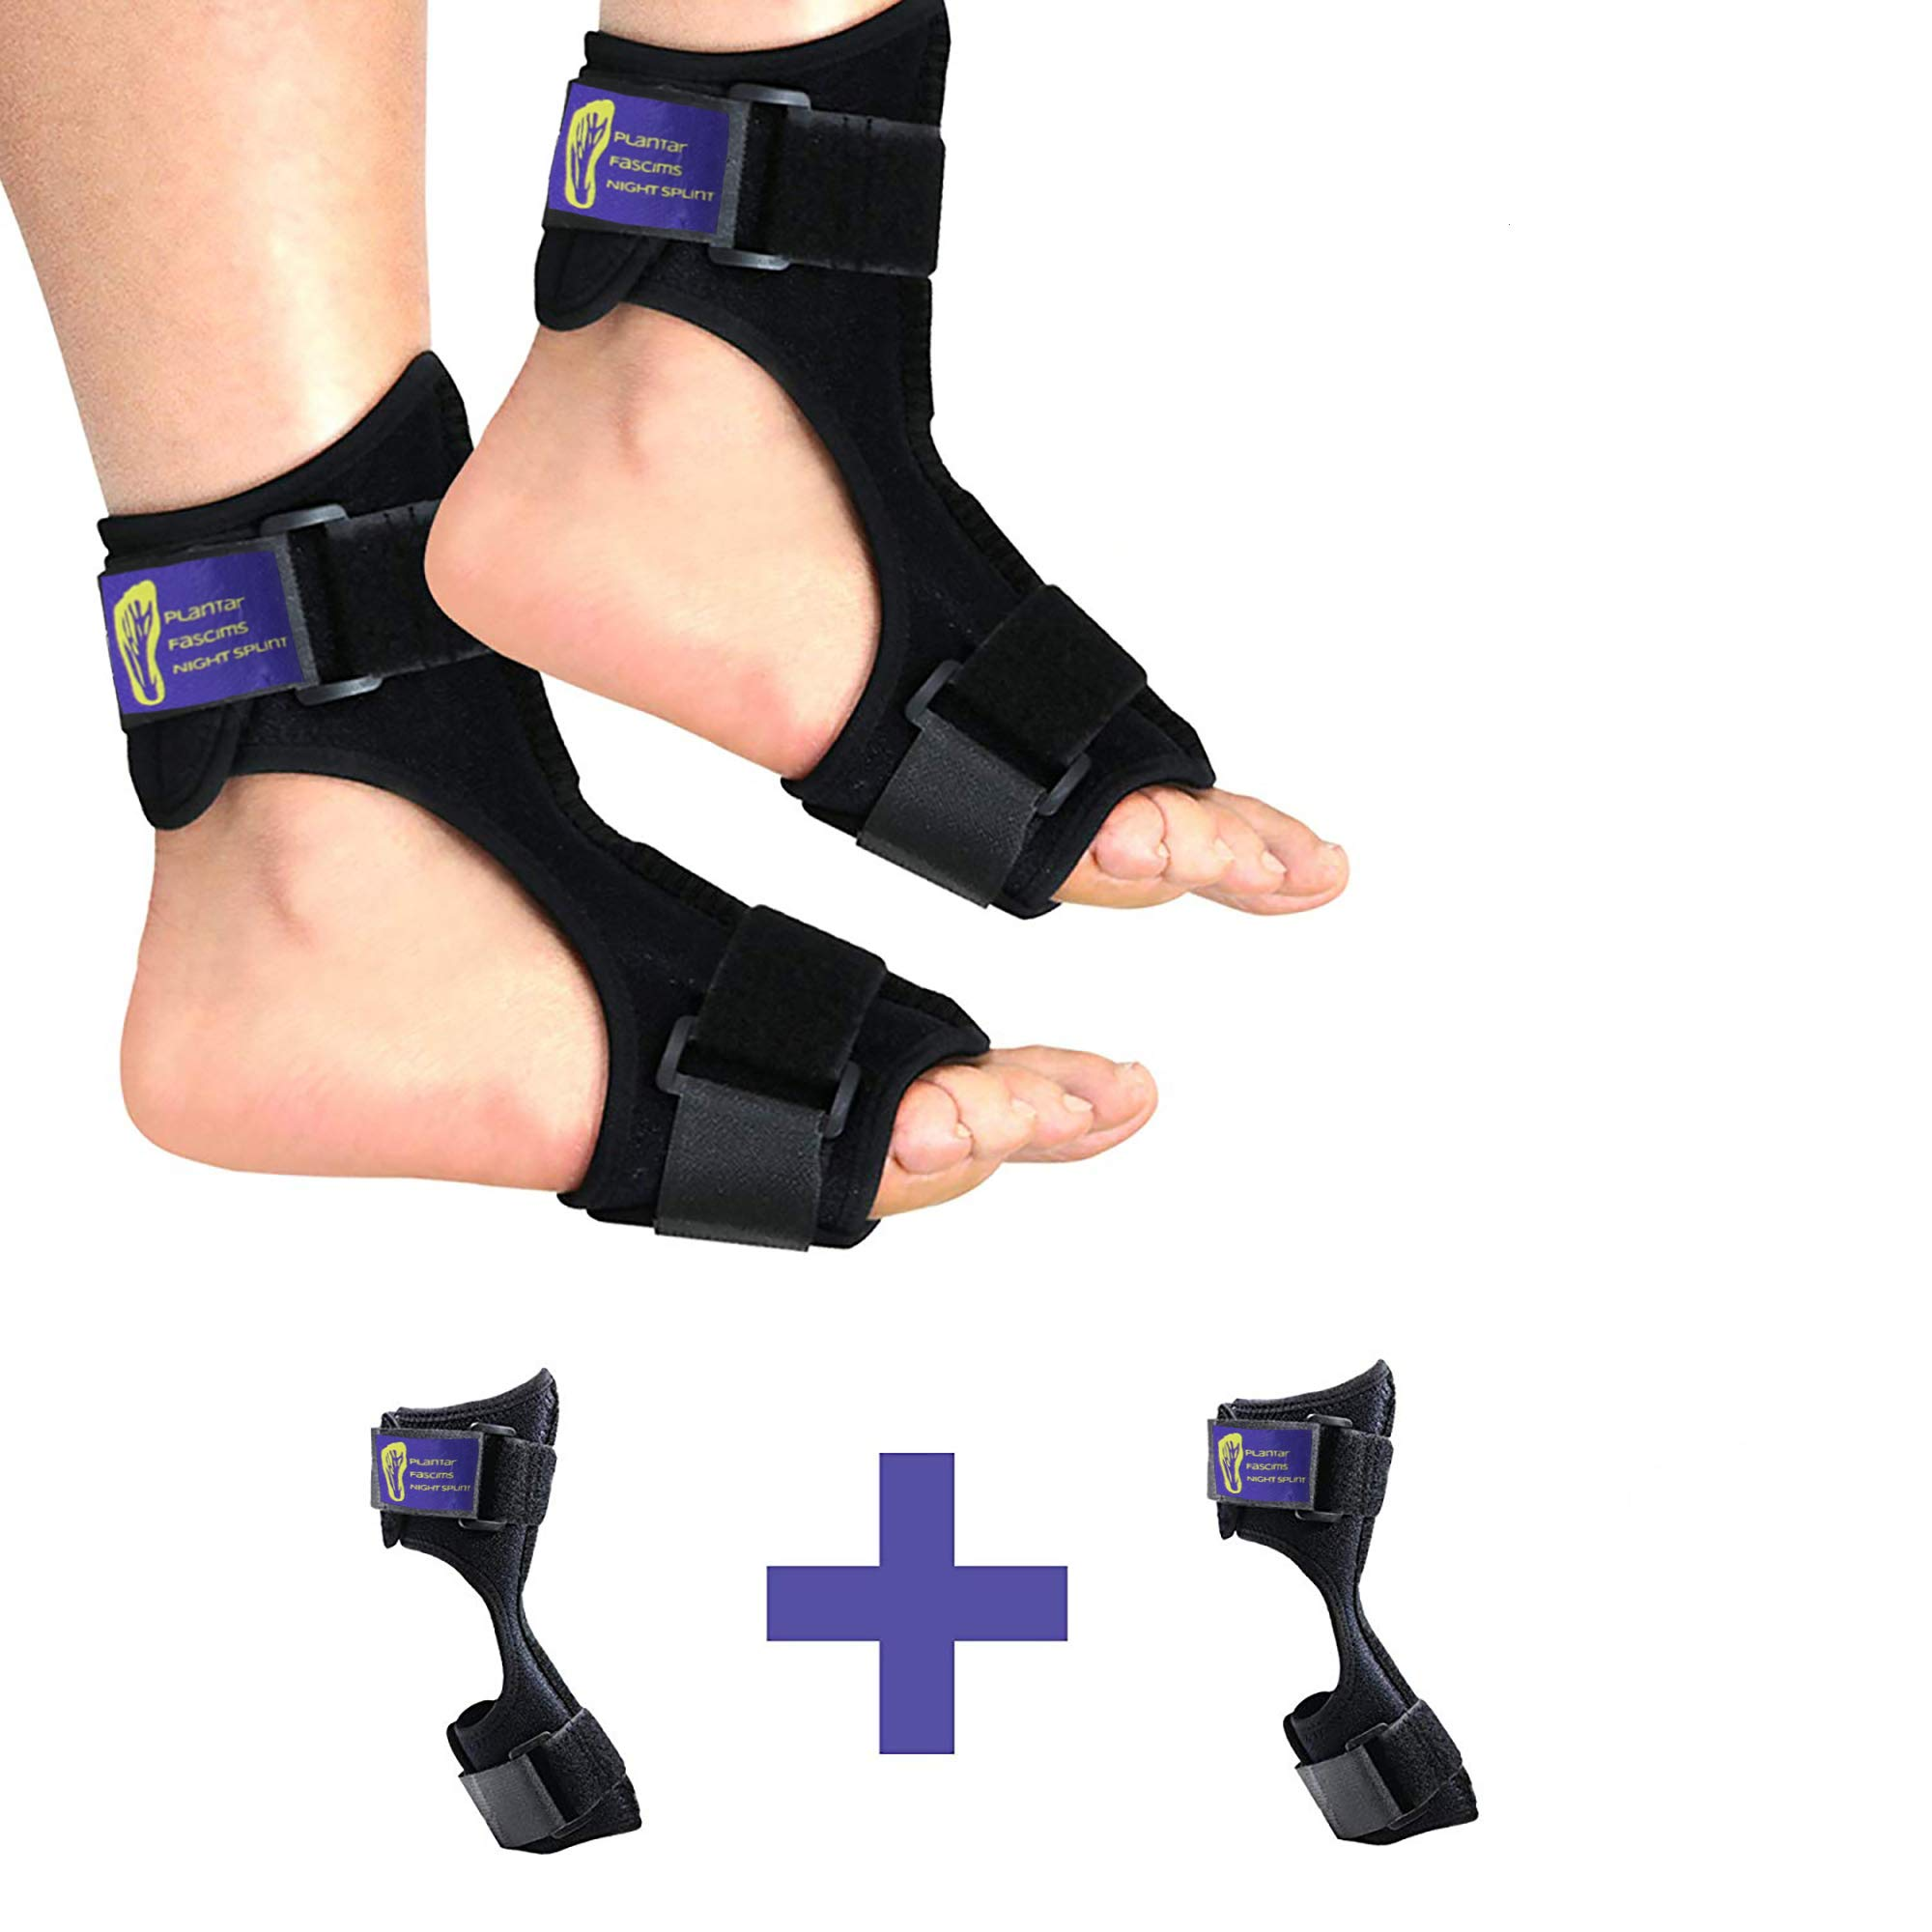 Pack of 2 - Everyday Medical - Plantar Fasciitis Night Splints for Both Feet - Plantar Fascia Pain Relief Sock- Stretching Support Boot Best for Achilles Tendonitis, Heel, Arch Foot Pain